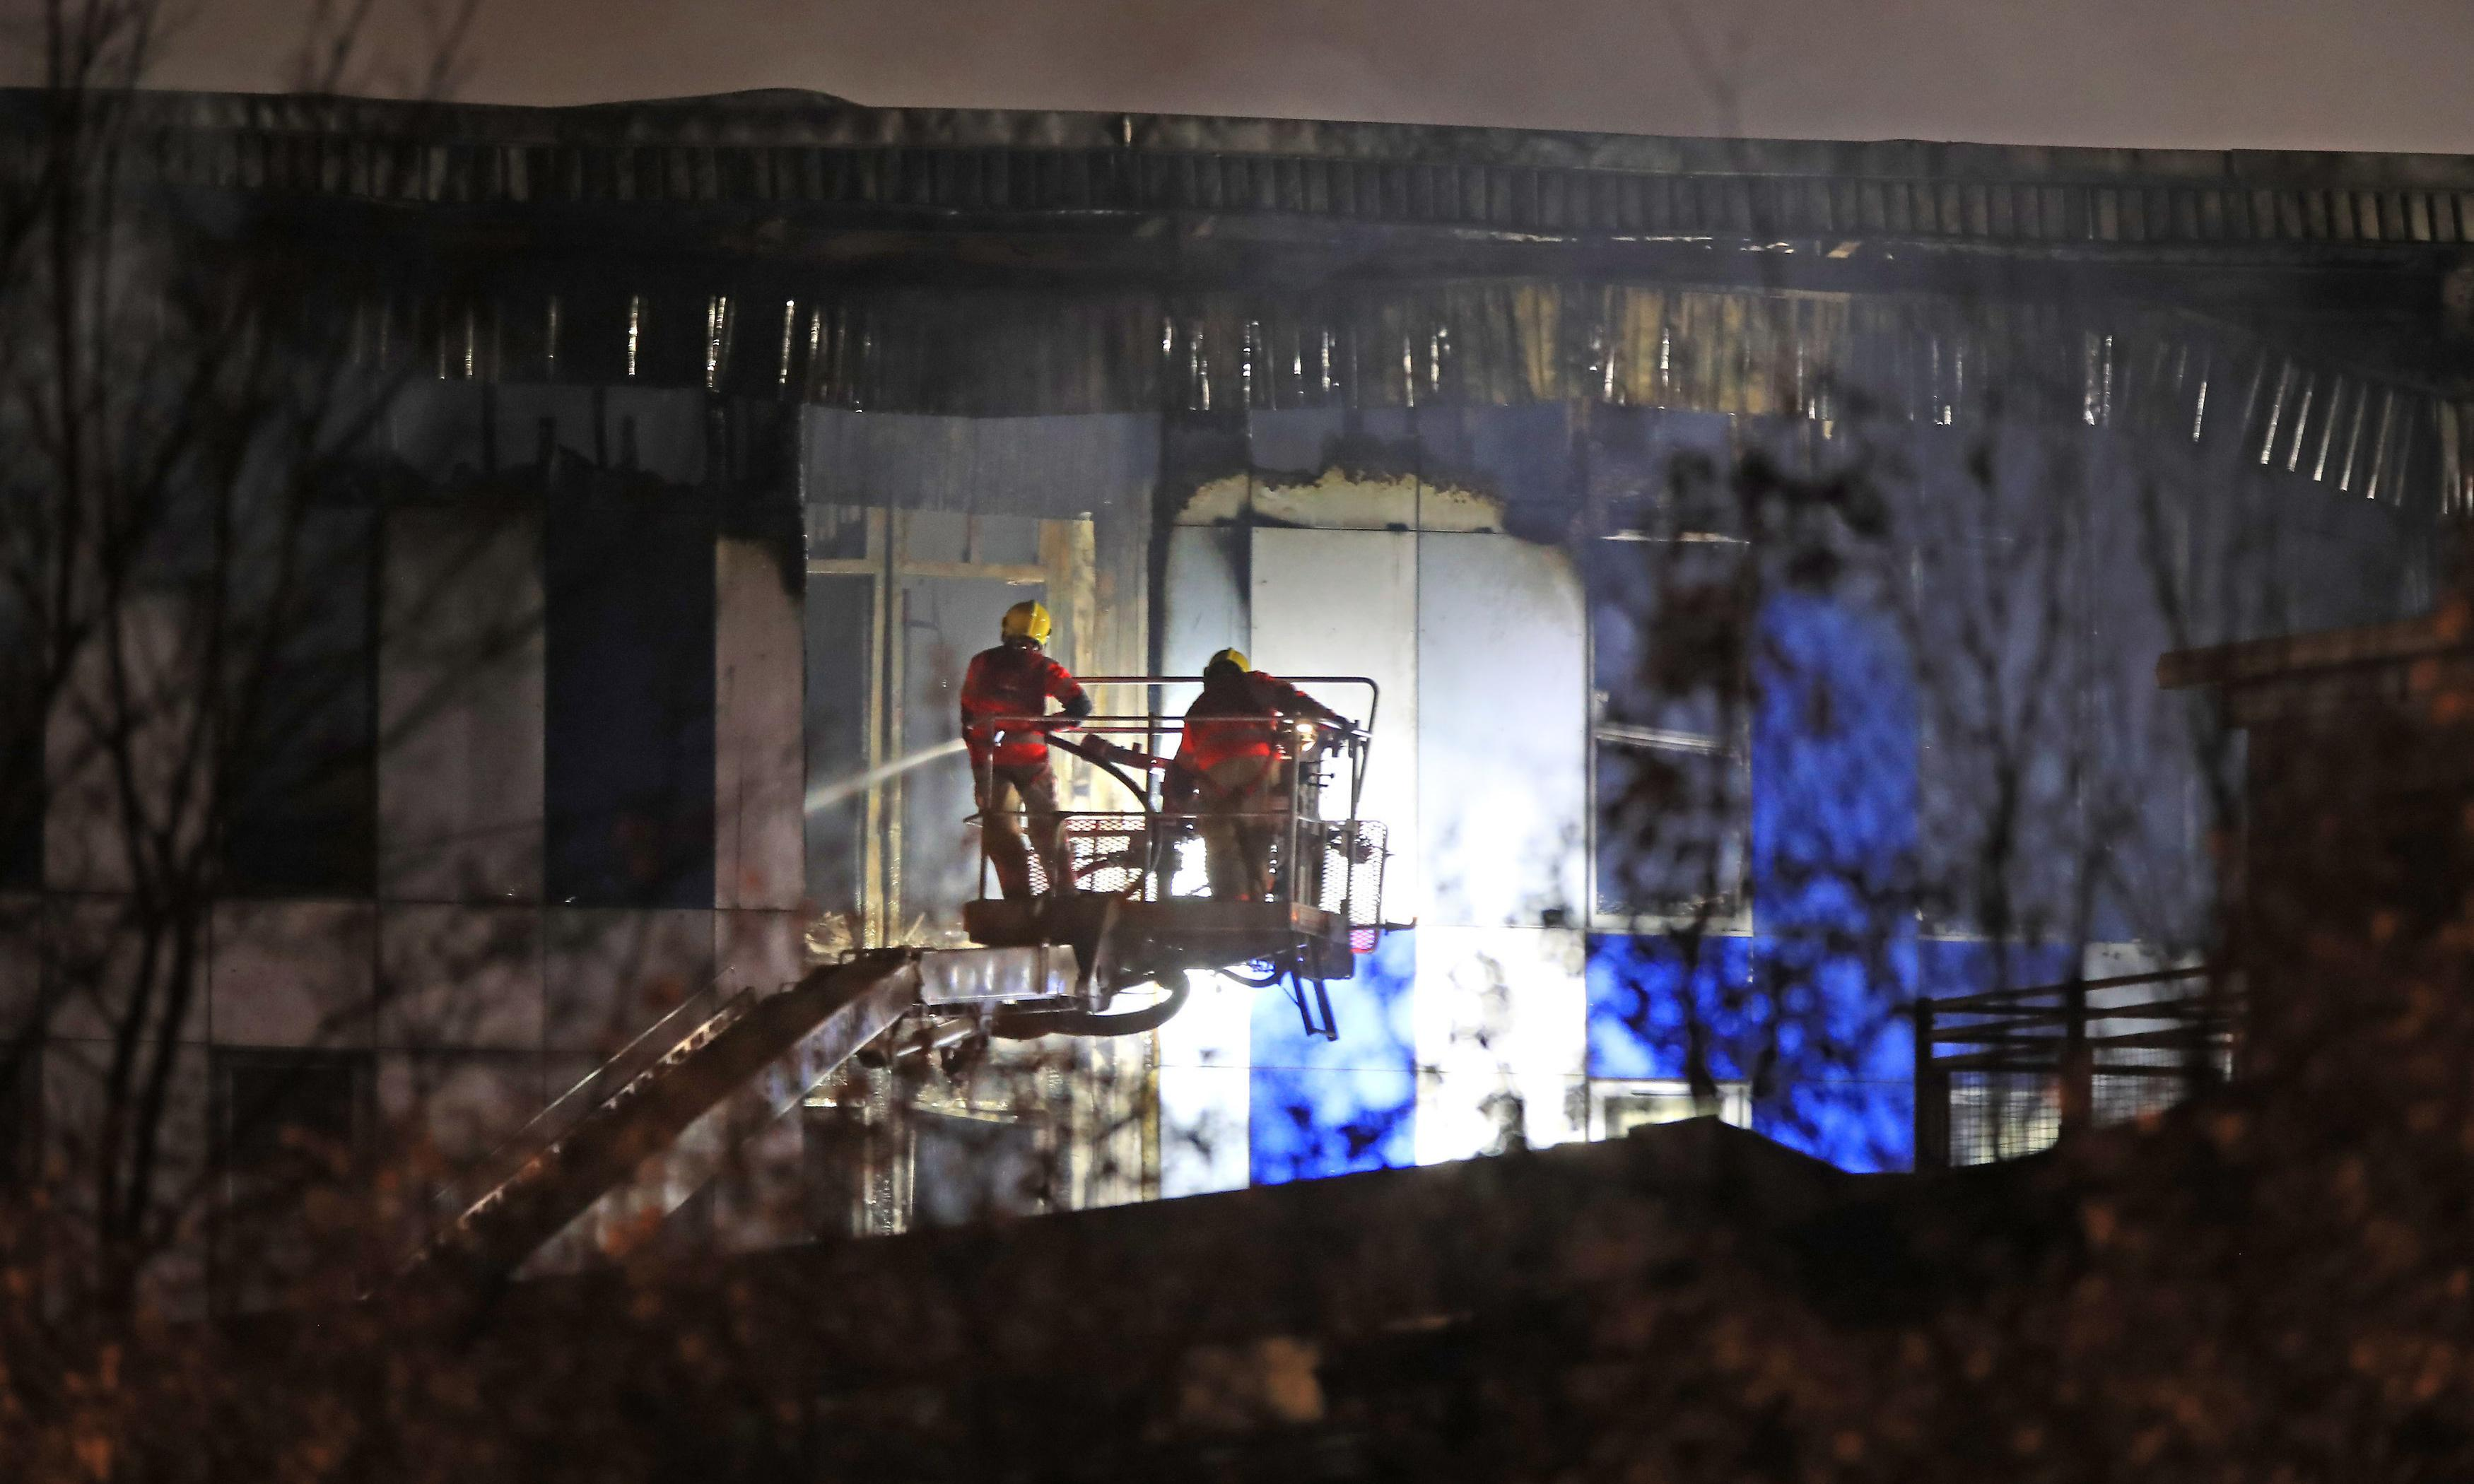 Bolton fire: government downplaying risks of HPL cladding, say critics